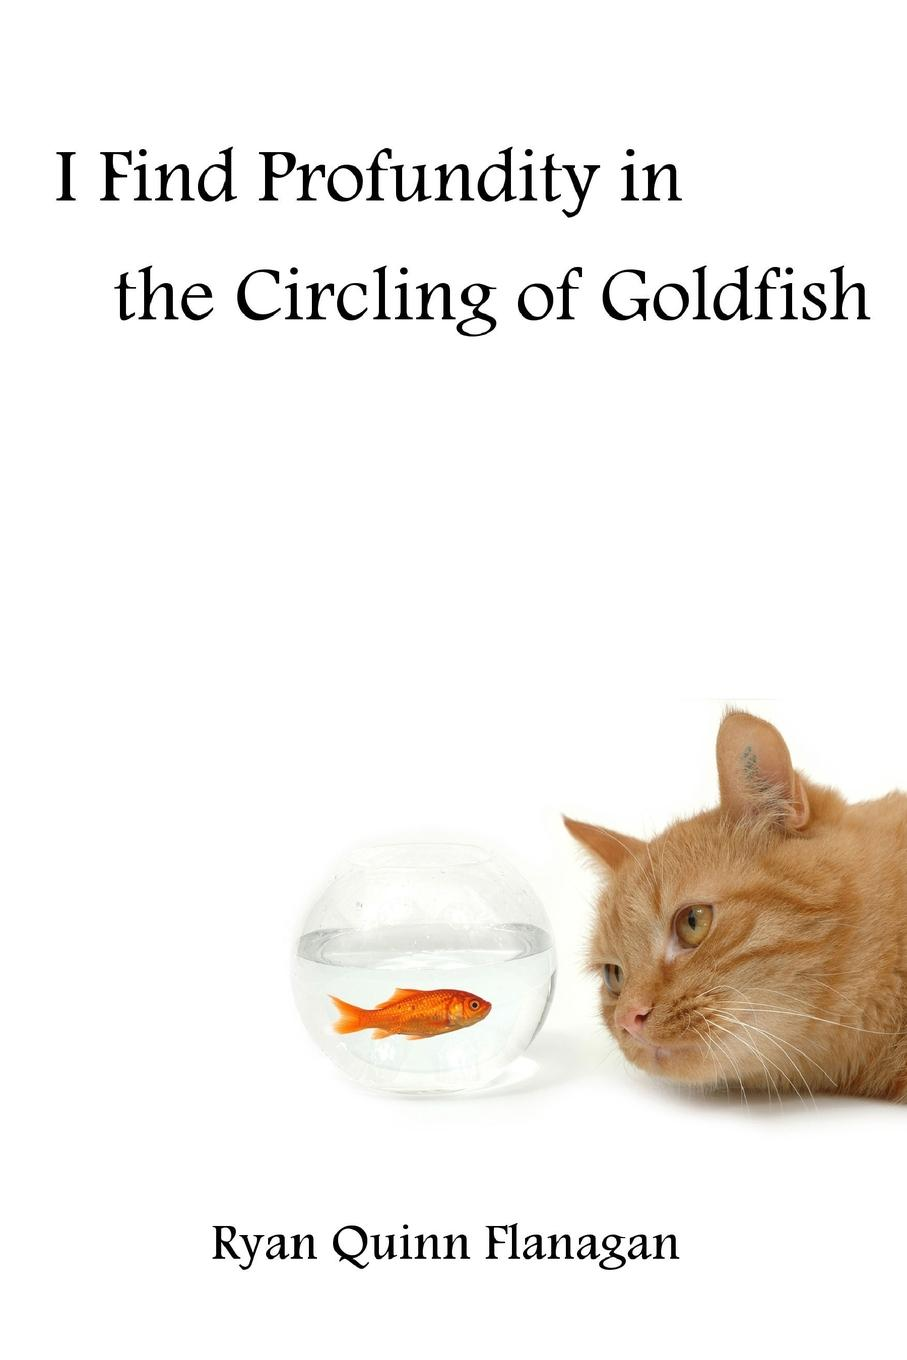 Ryan Quinn Flanagan I Find Profundity in the Circling of Goldfish